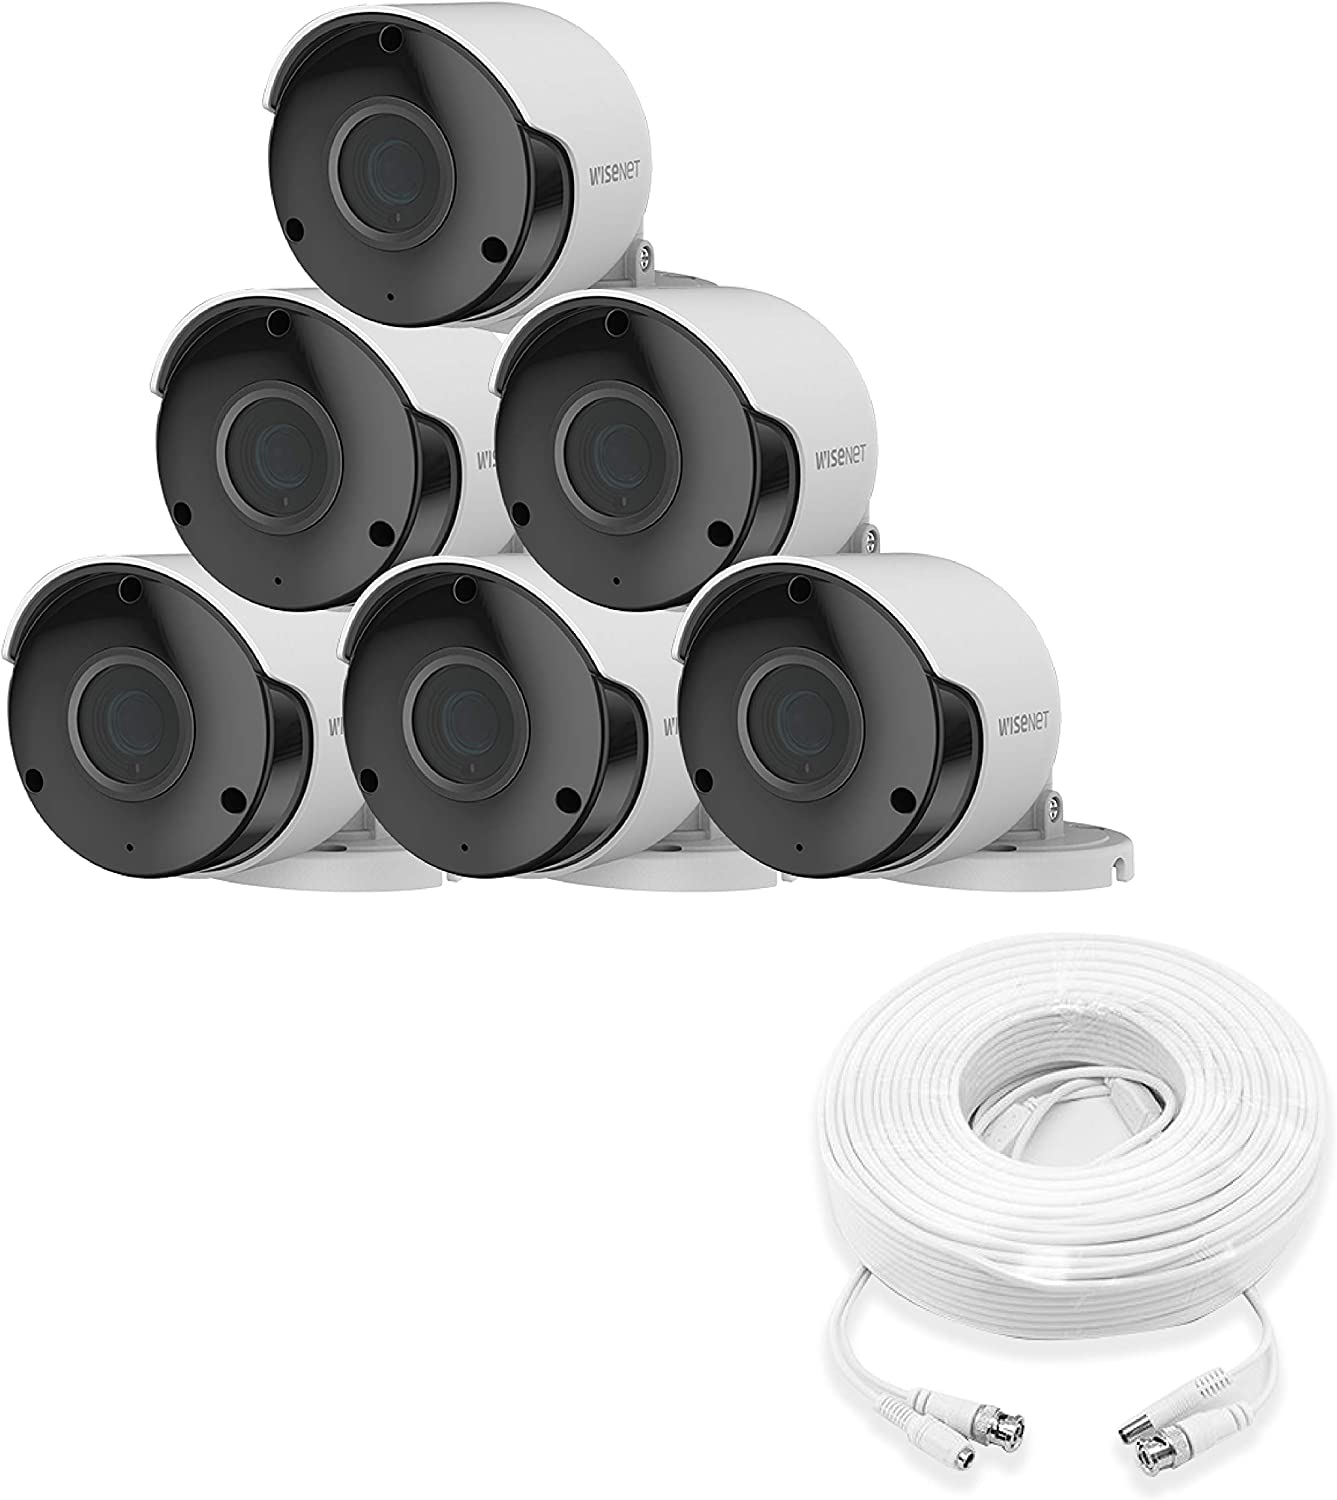 Wisenet SDC-89445BF 5MP CCTV Surveillance Weatherproof Bullet Security Camera 82ft IR Distance Plastic Housing 3.6mm Lens 104° Wide Angle (6 Pack)